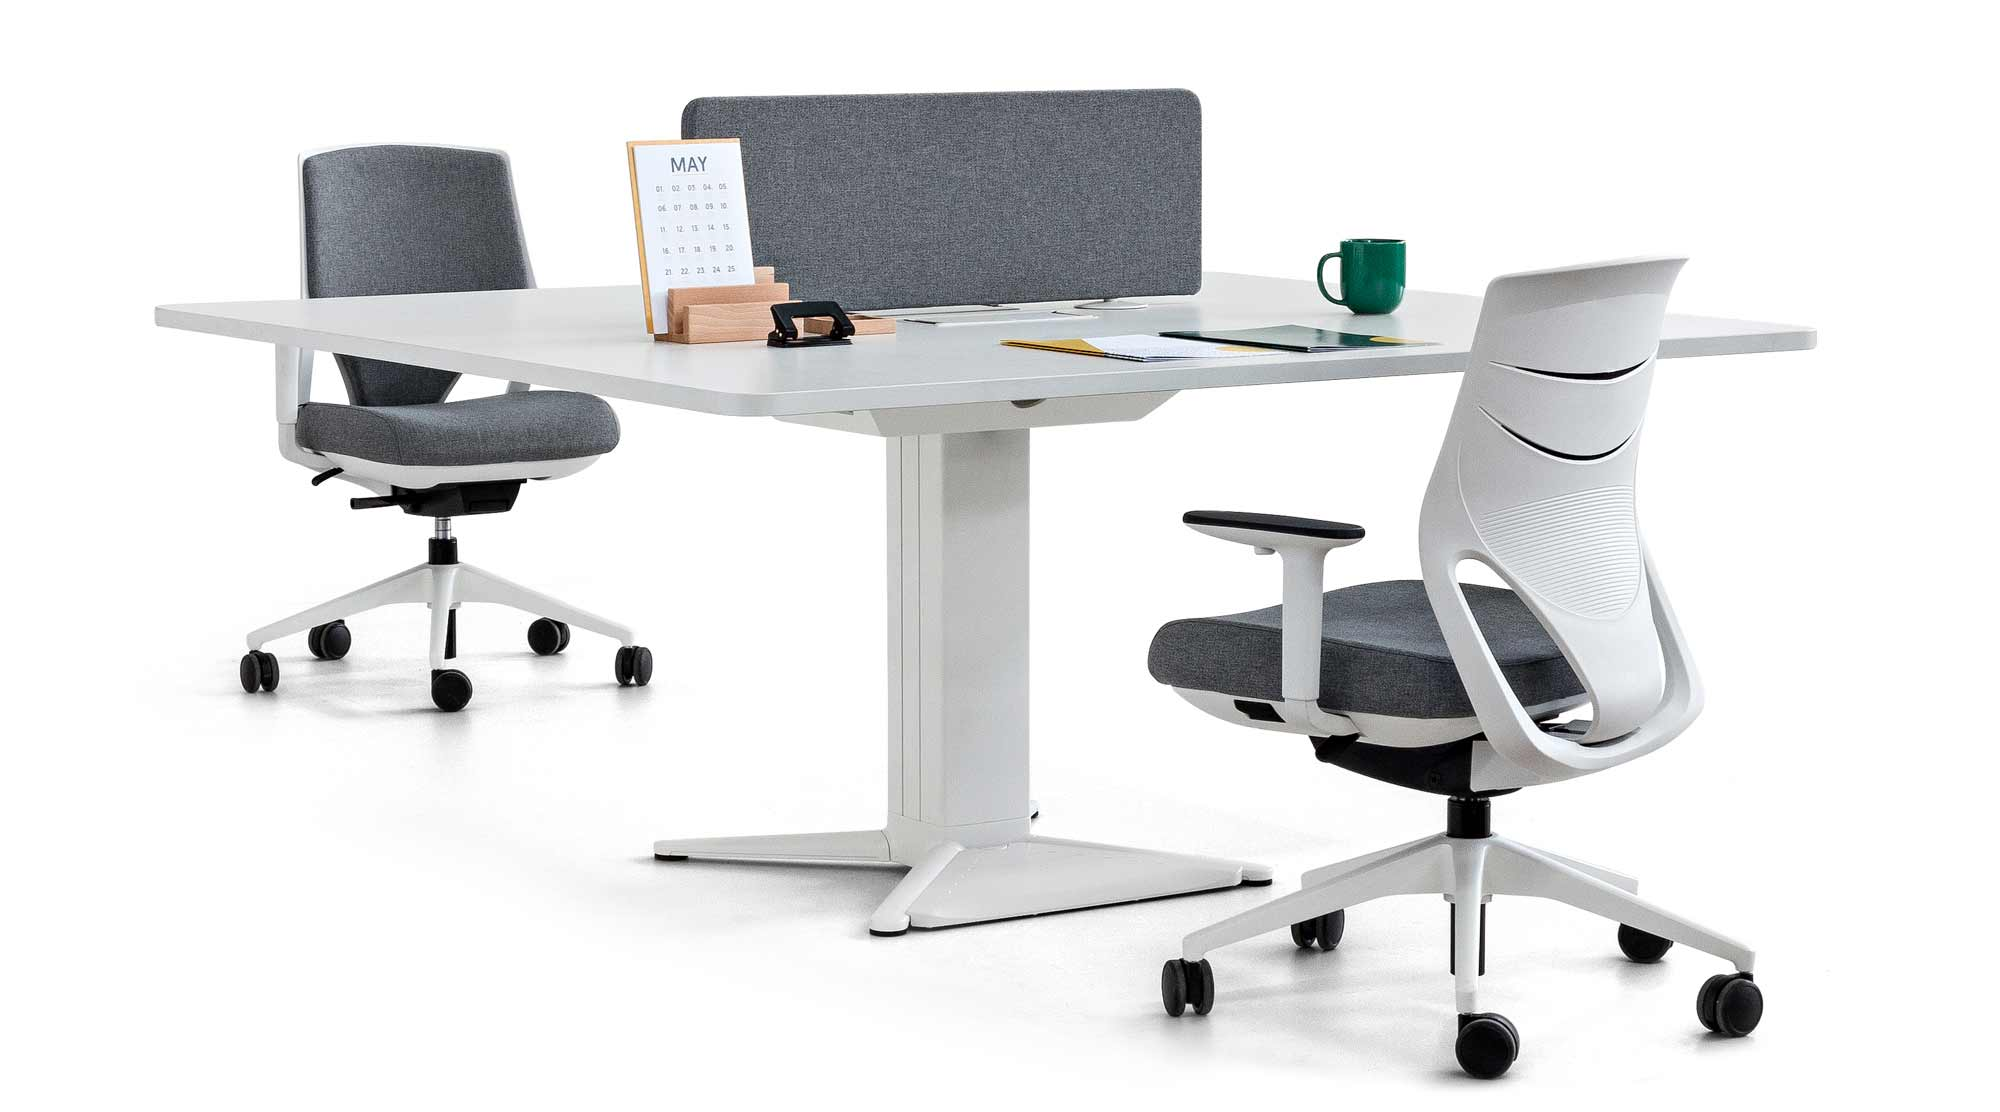 desk power operative executive tables efit chair white comfort technology combination design height configuration workstation workplace dual communication elegant masof actiu